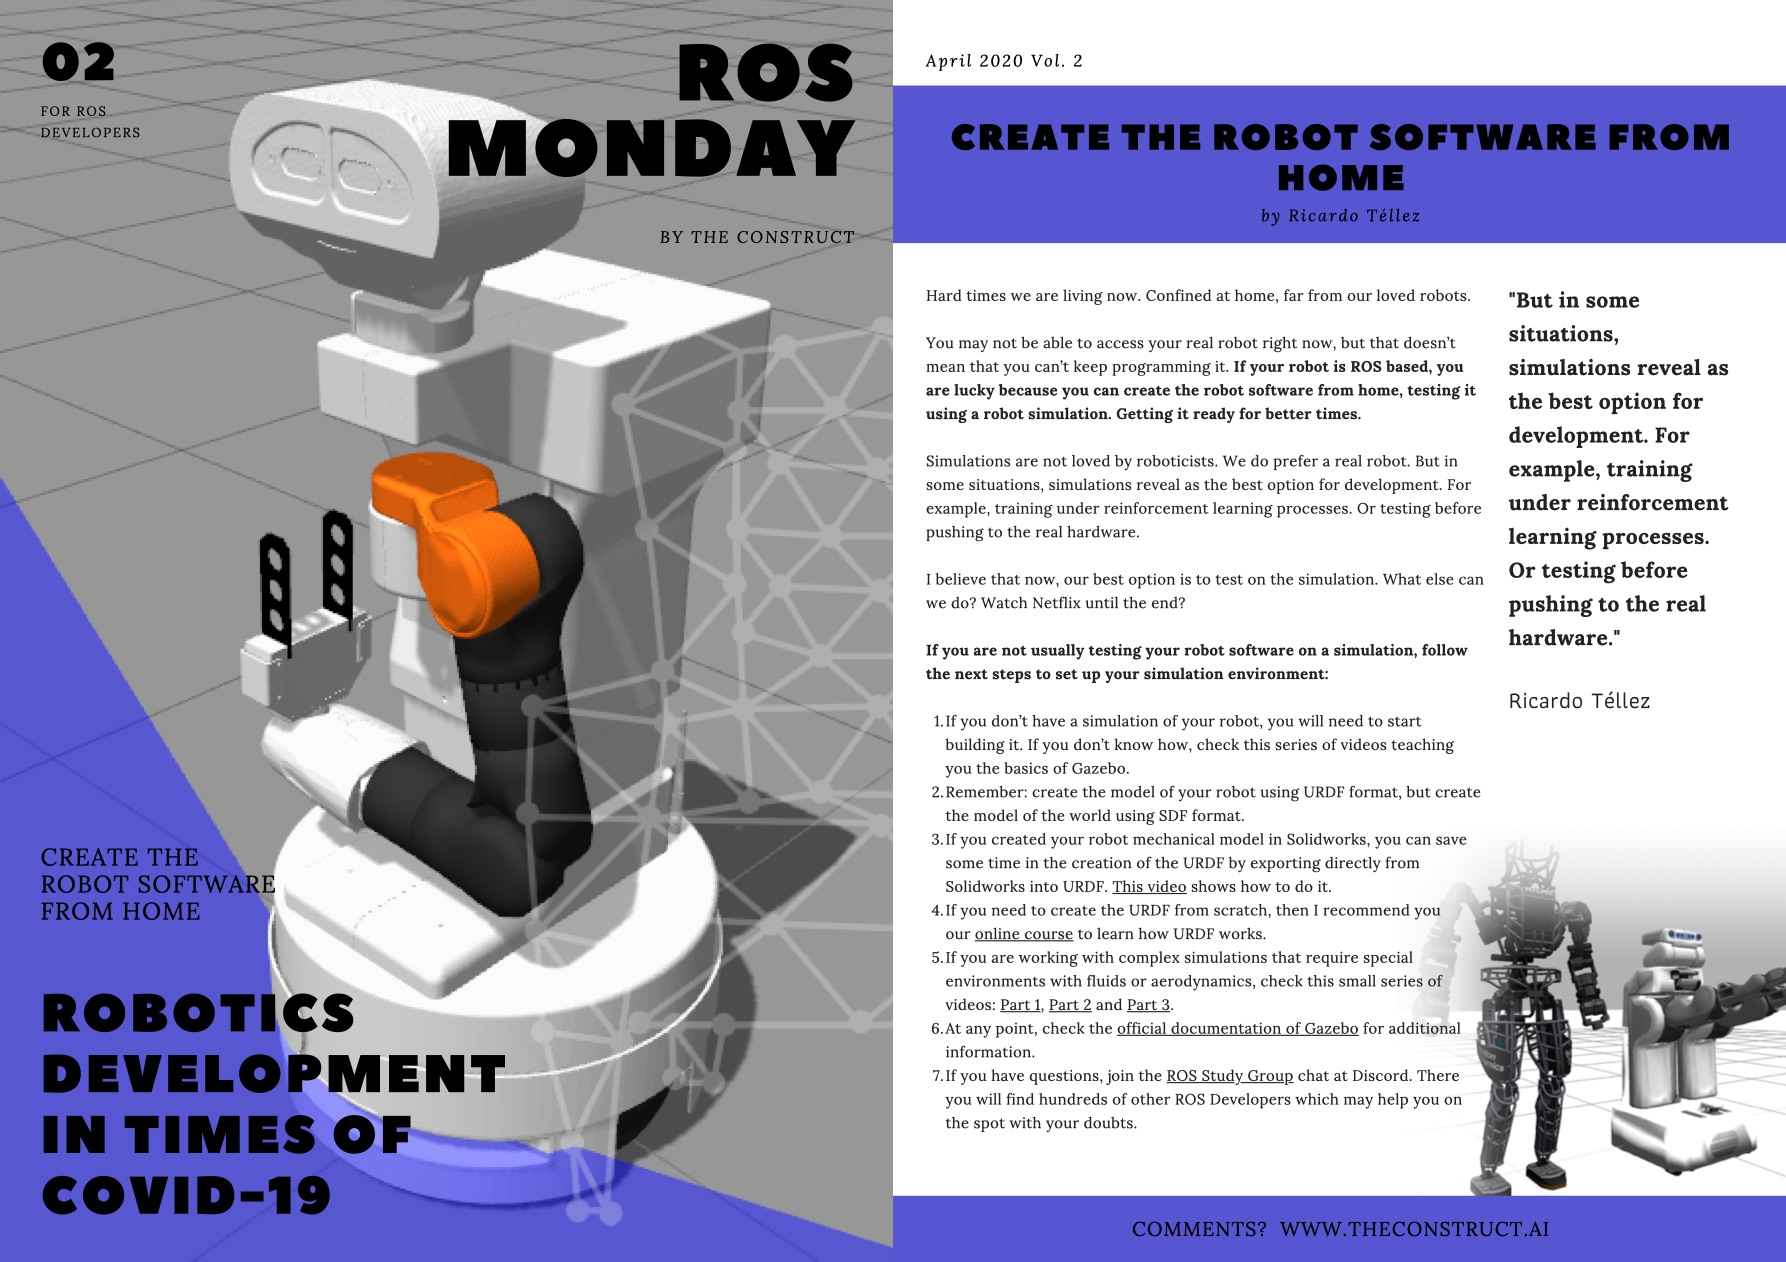 ROS Monday Vol.2 – Robotics Development in times of COVID-19